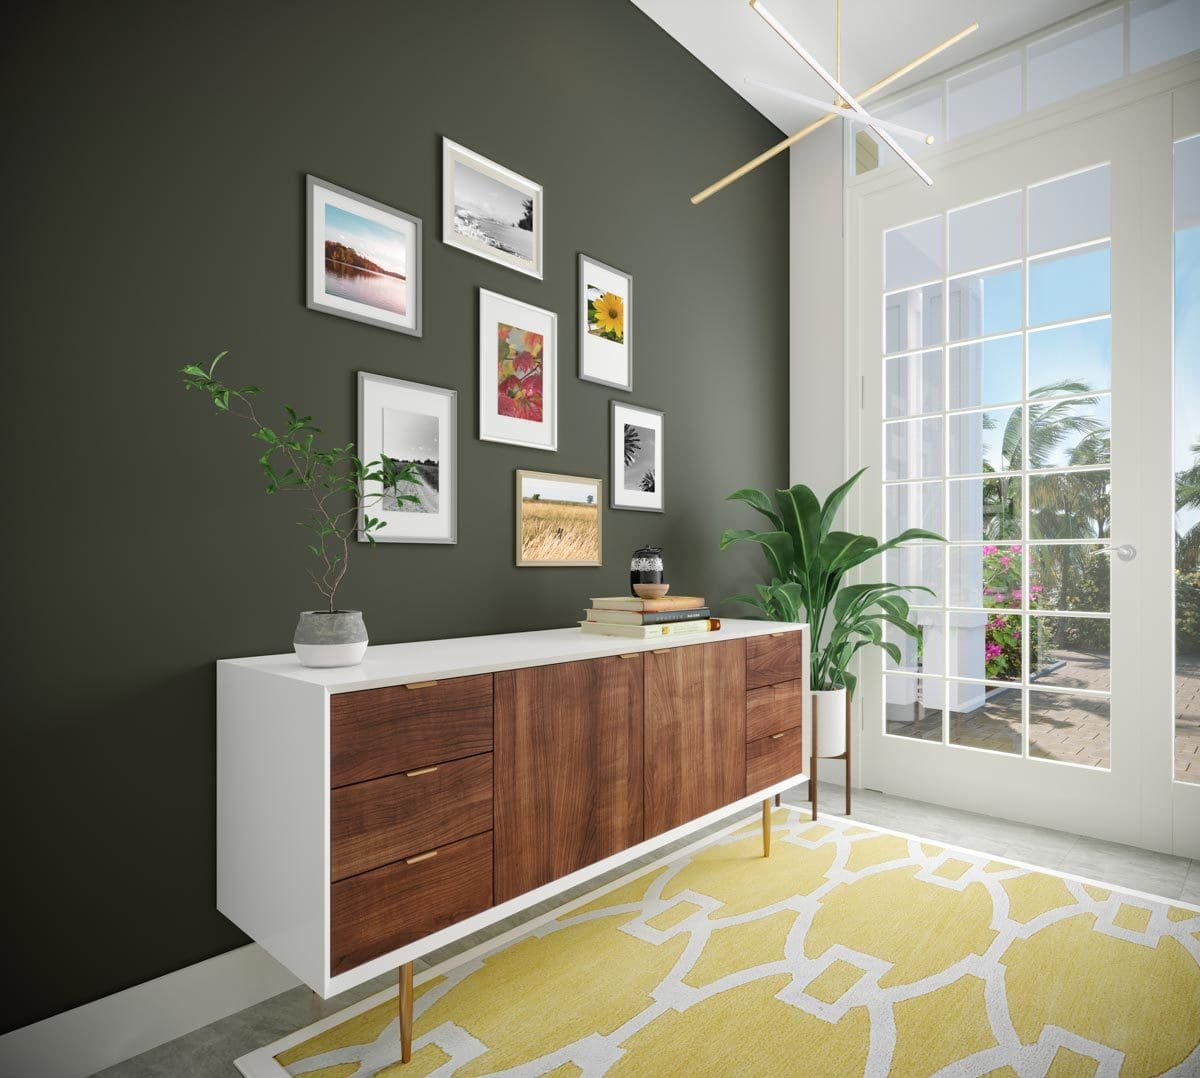 A photo gallery hangs above the wooden console table that sits on a yellow patterned rug.